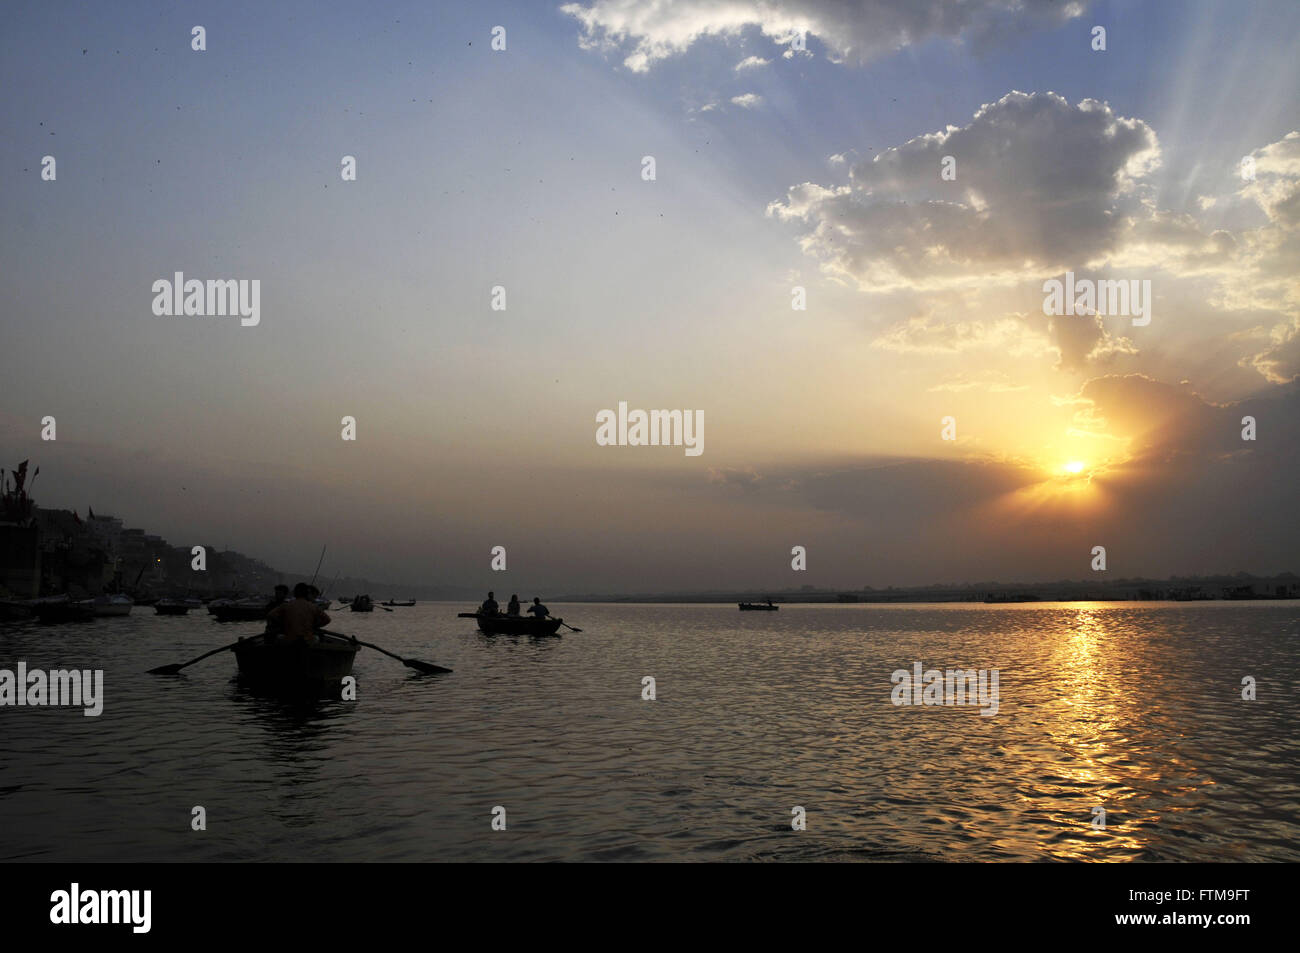 Ganges River on the edge of the city of Varanasi - considered a sacred river for Hindus - Stock Image